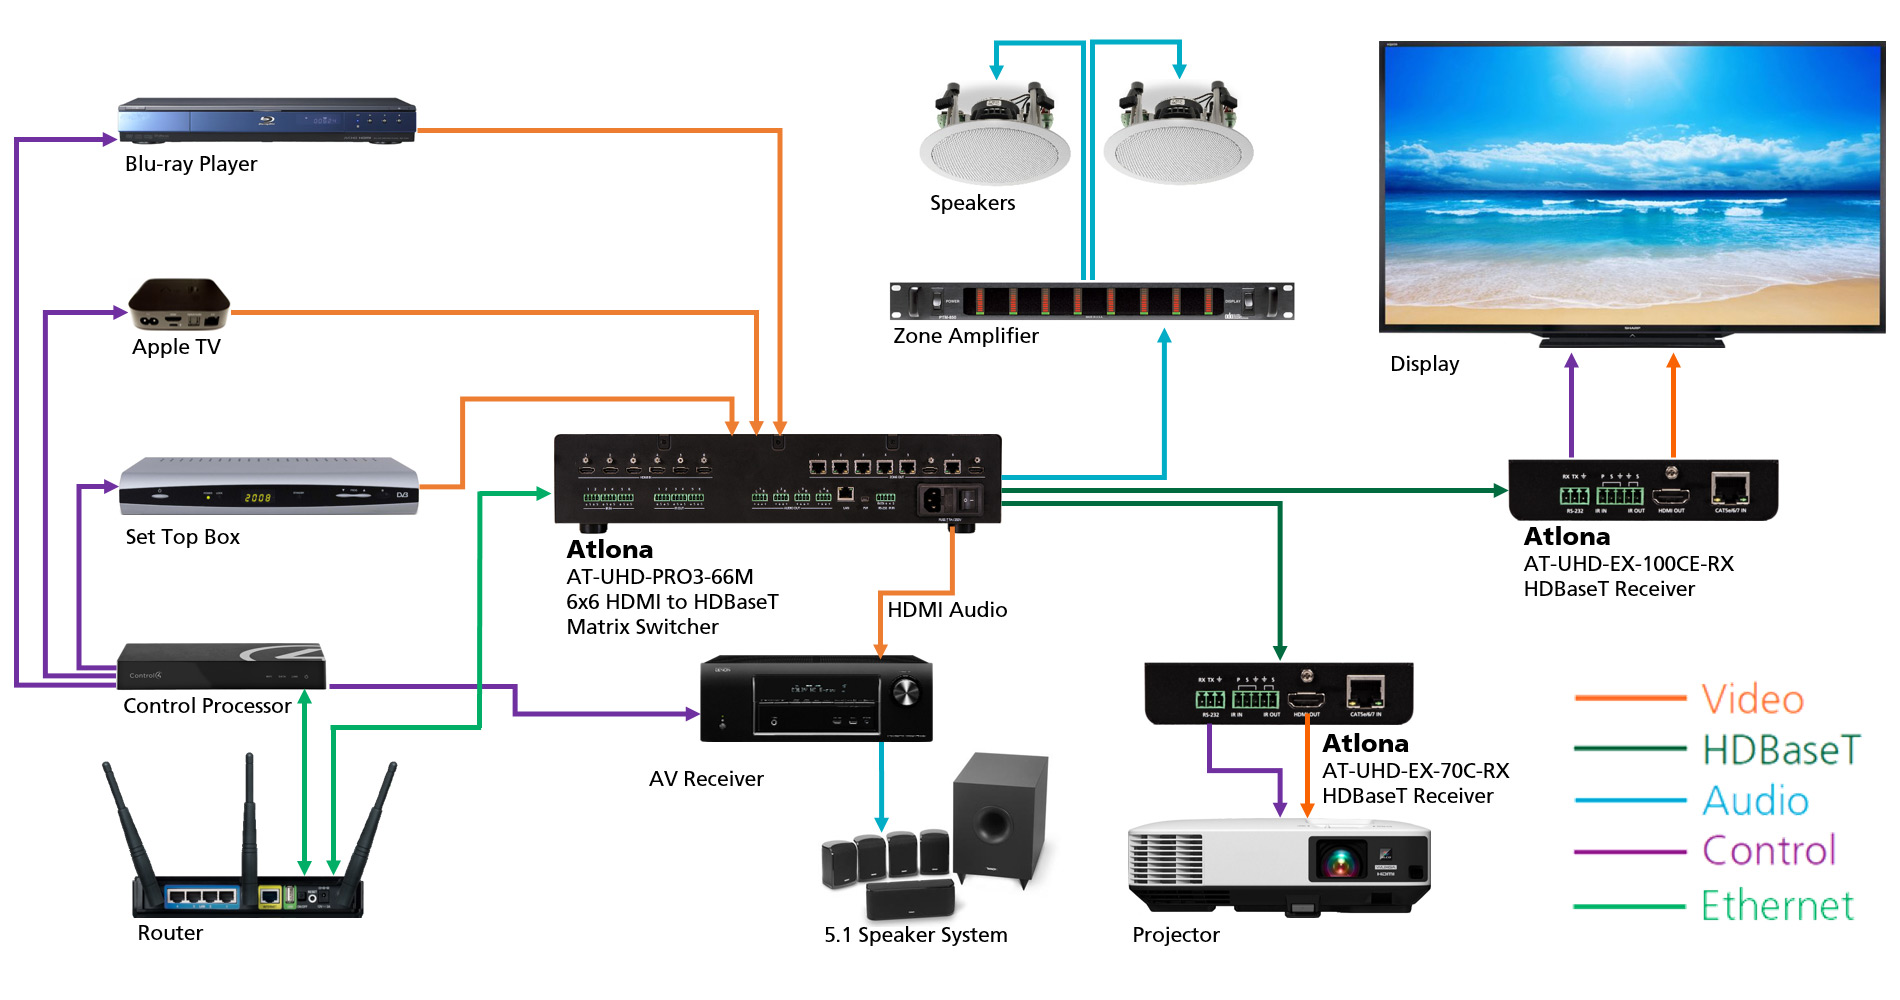 hdmi setup diagram wiring for 7 way trailer plug 4k uhd over 100m hdbaset receiver with control and poe